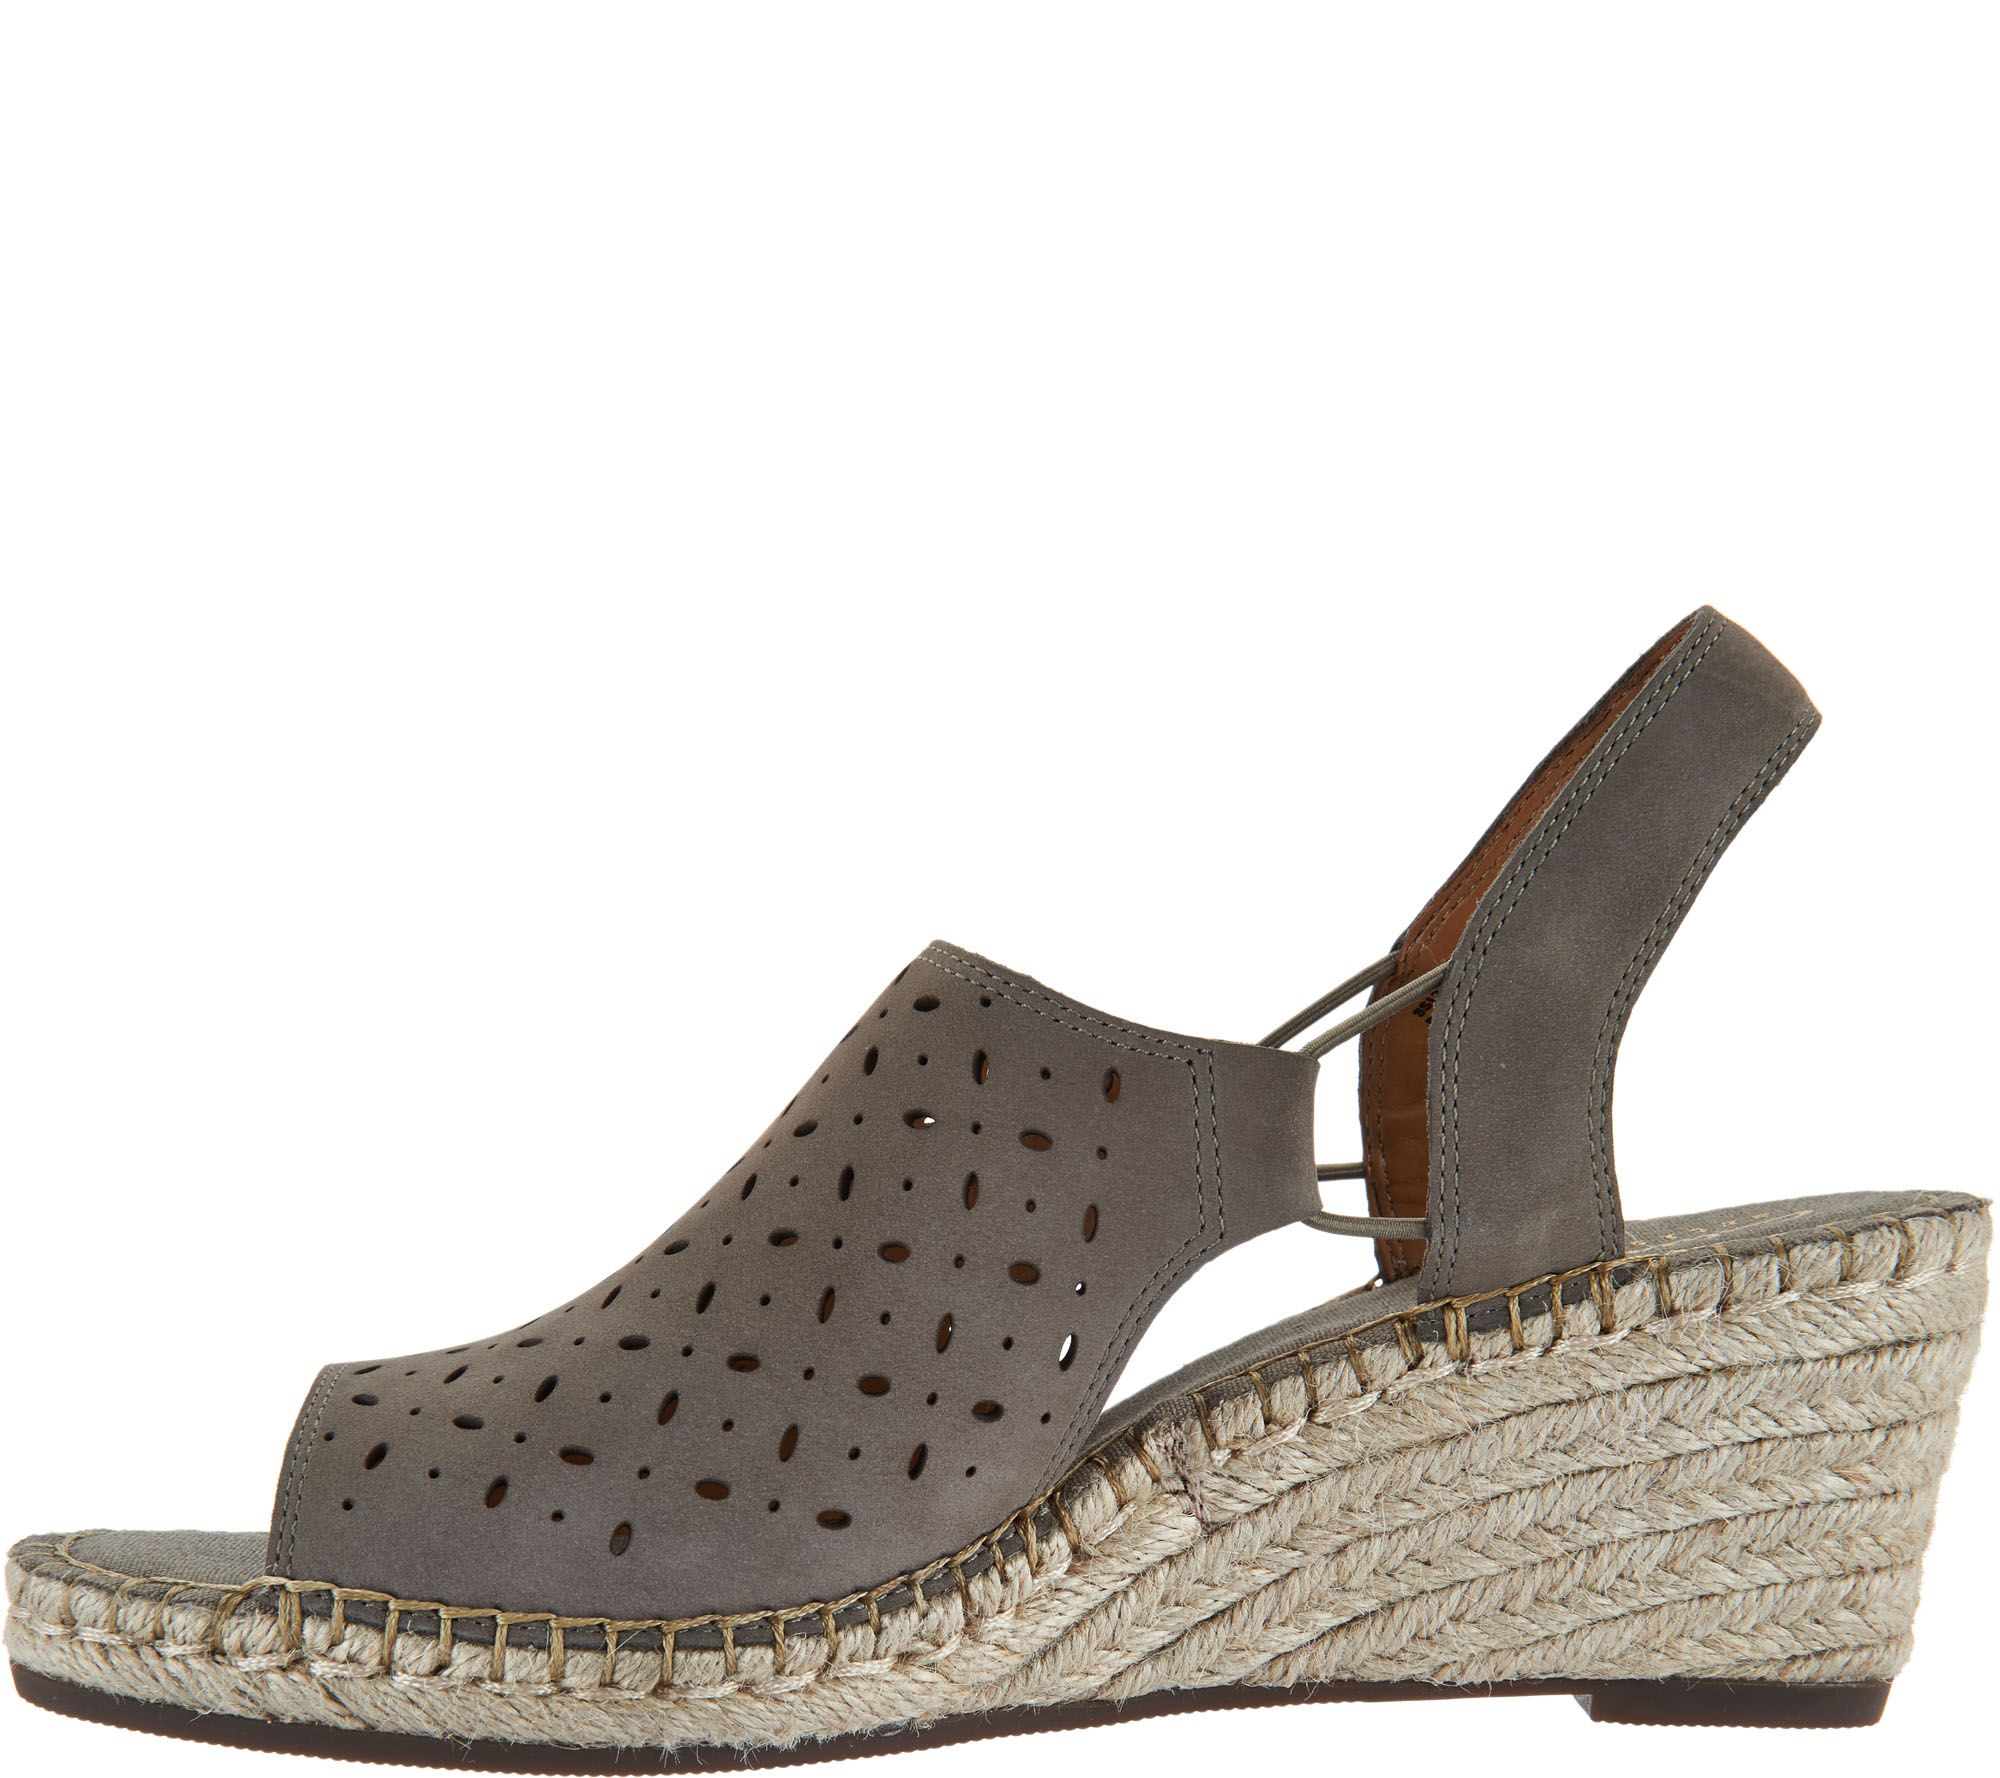 905d1cfbb6f Clarks Artisan Leather Espadrille Wedge Sandals - Petrina Gail - Page 1 —  QVC.com